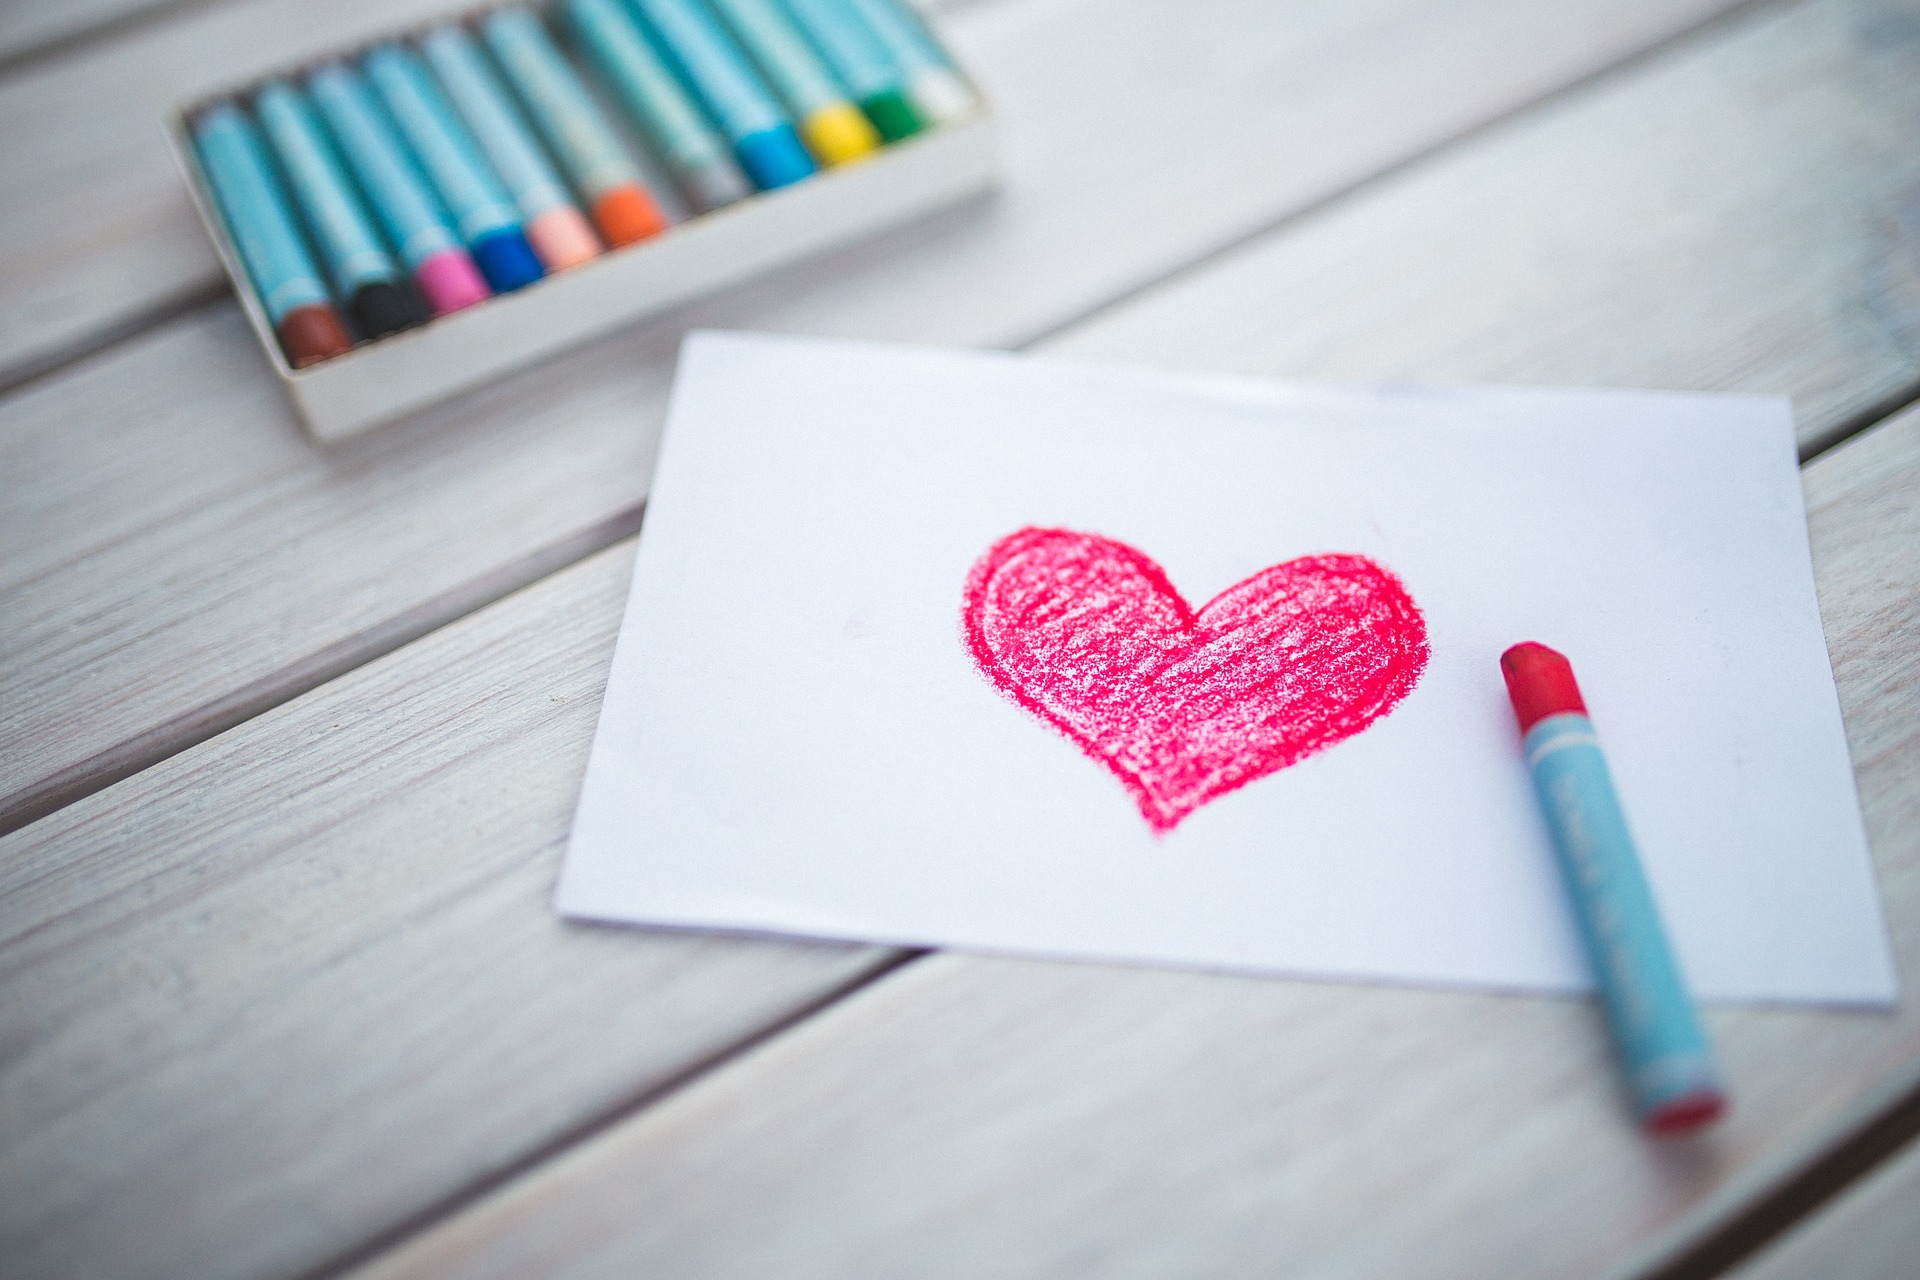 Skip out on store bought cards and make your own! Be sure to fill it with words from the heart.